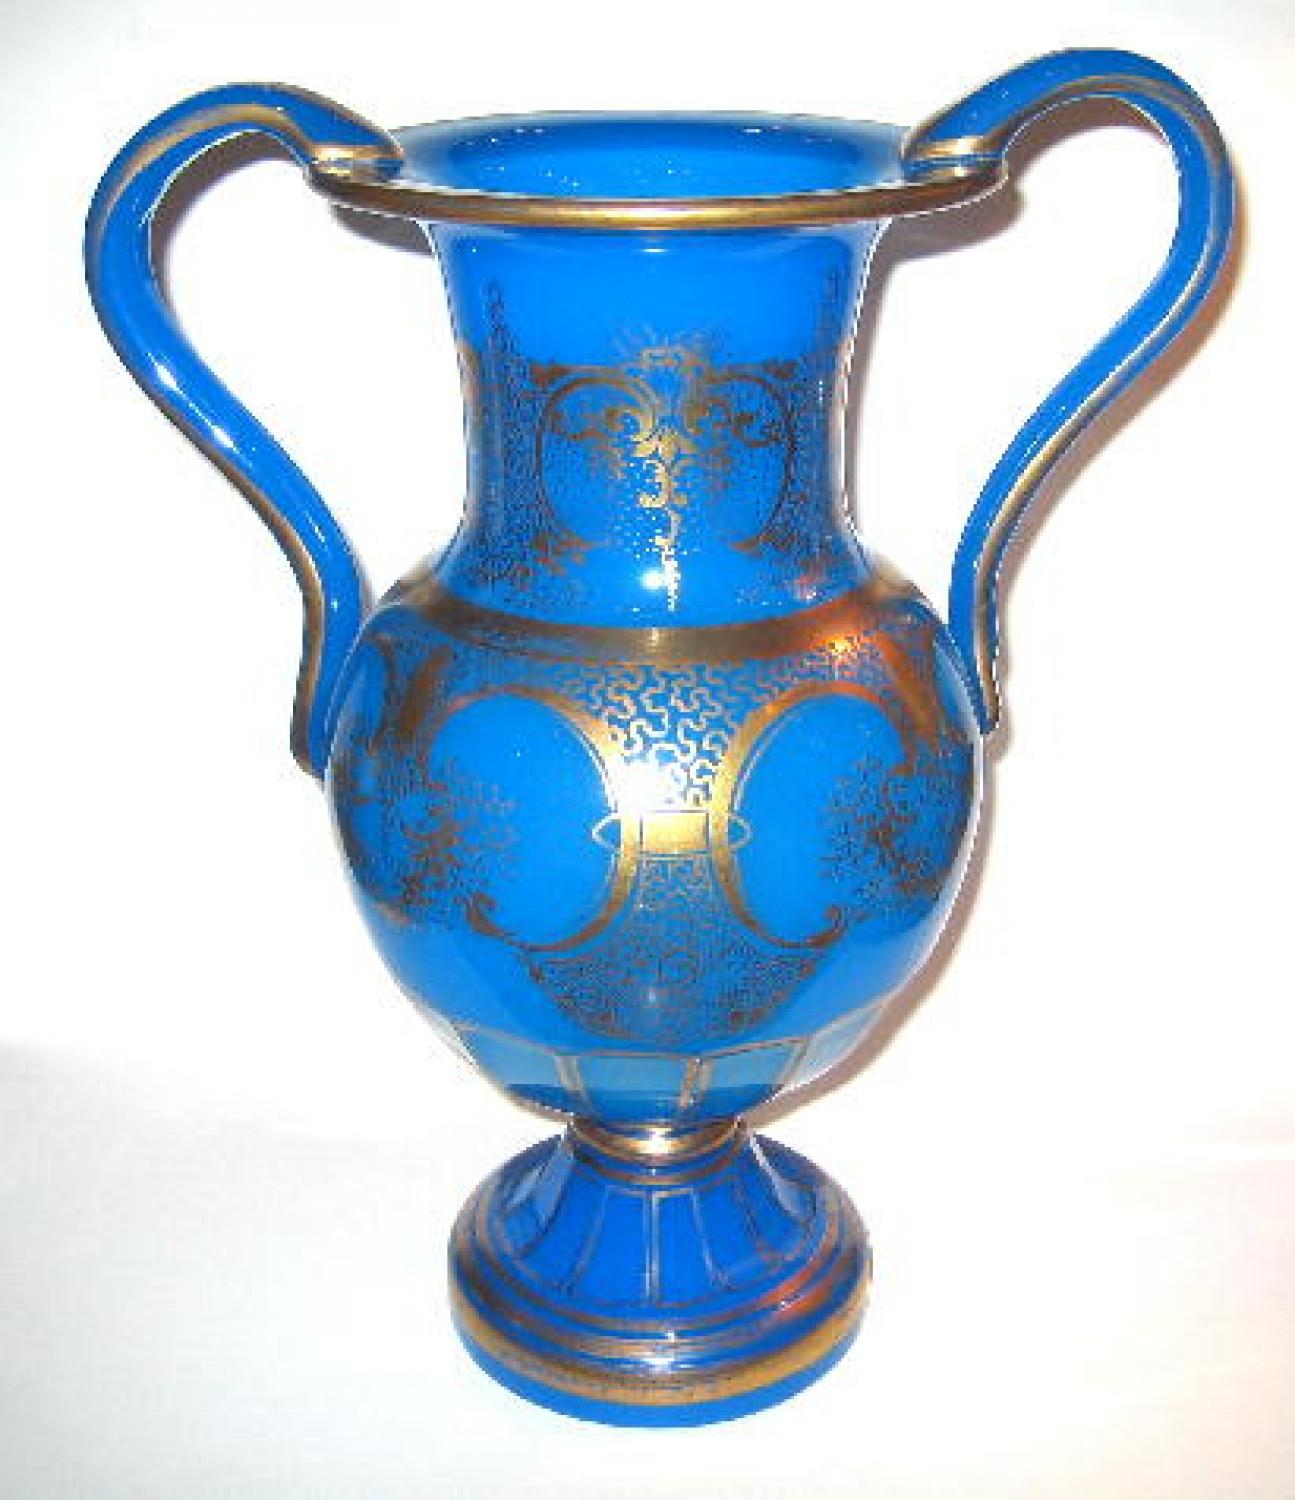 A Large French 19th Century Blue Opaline Vase